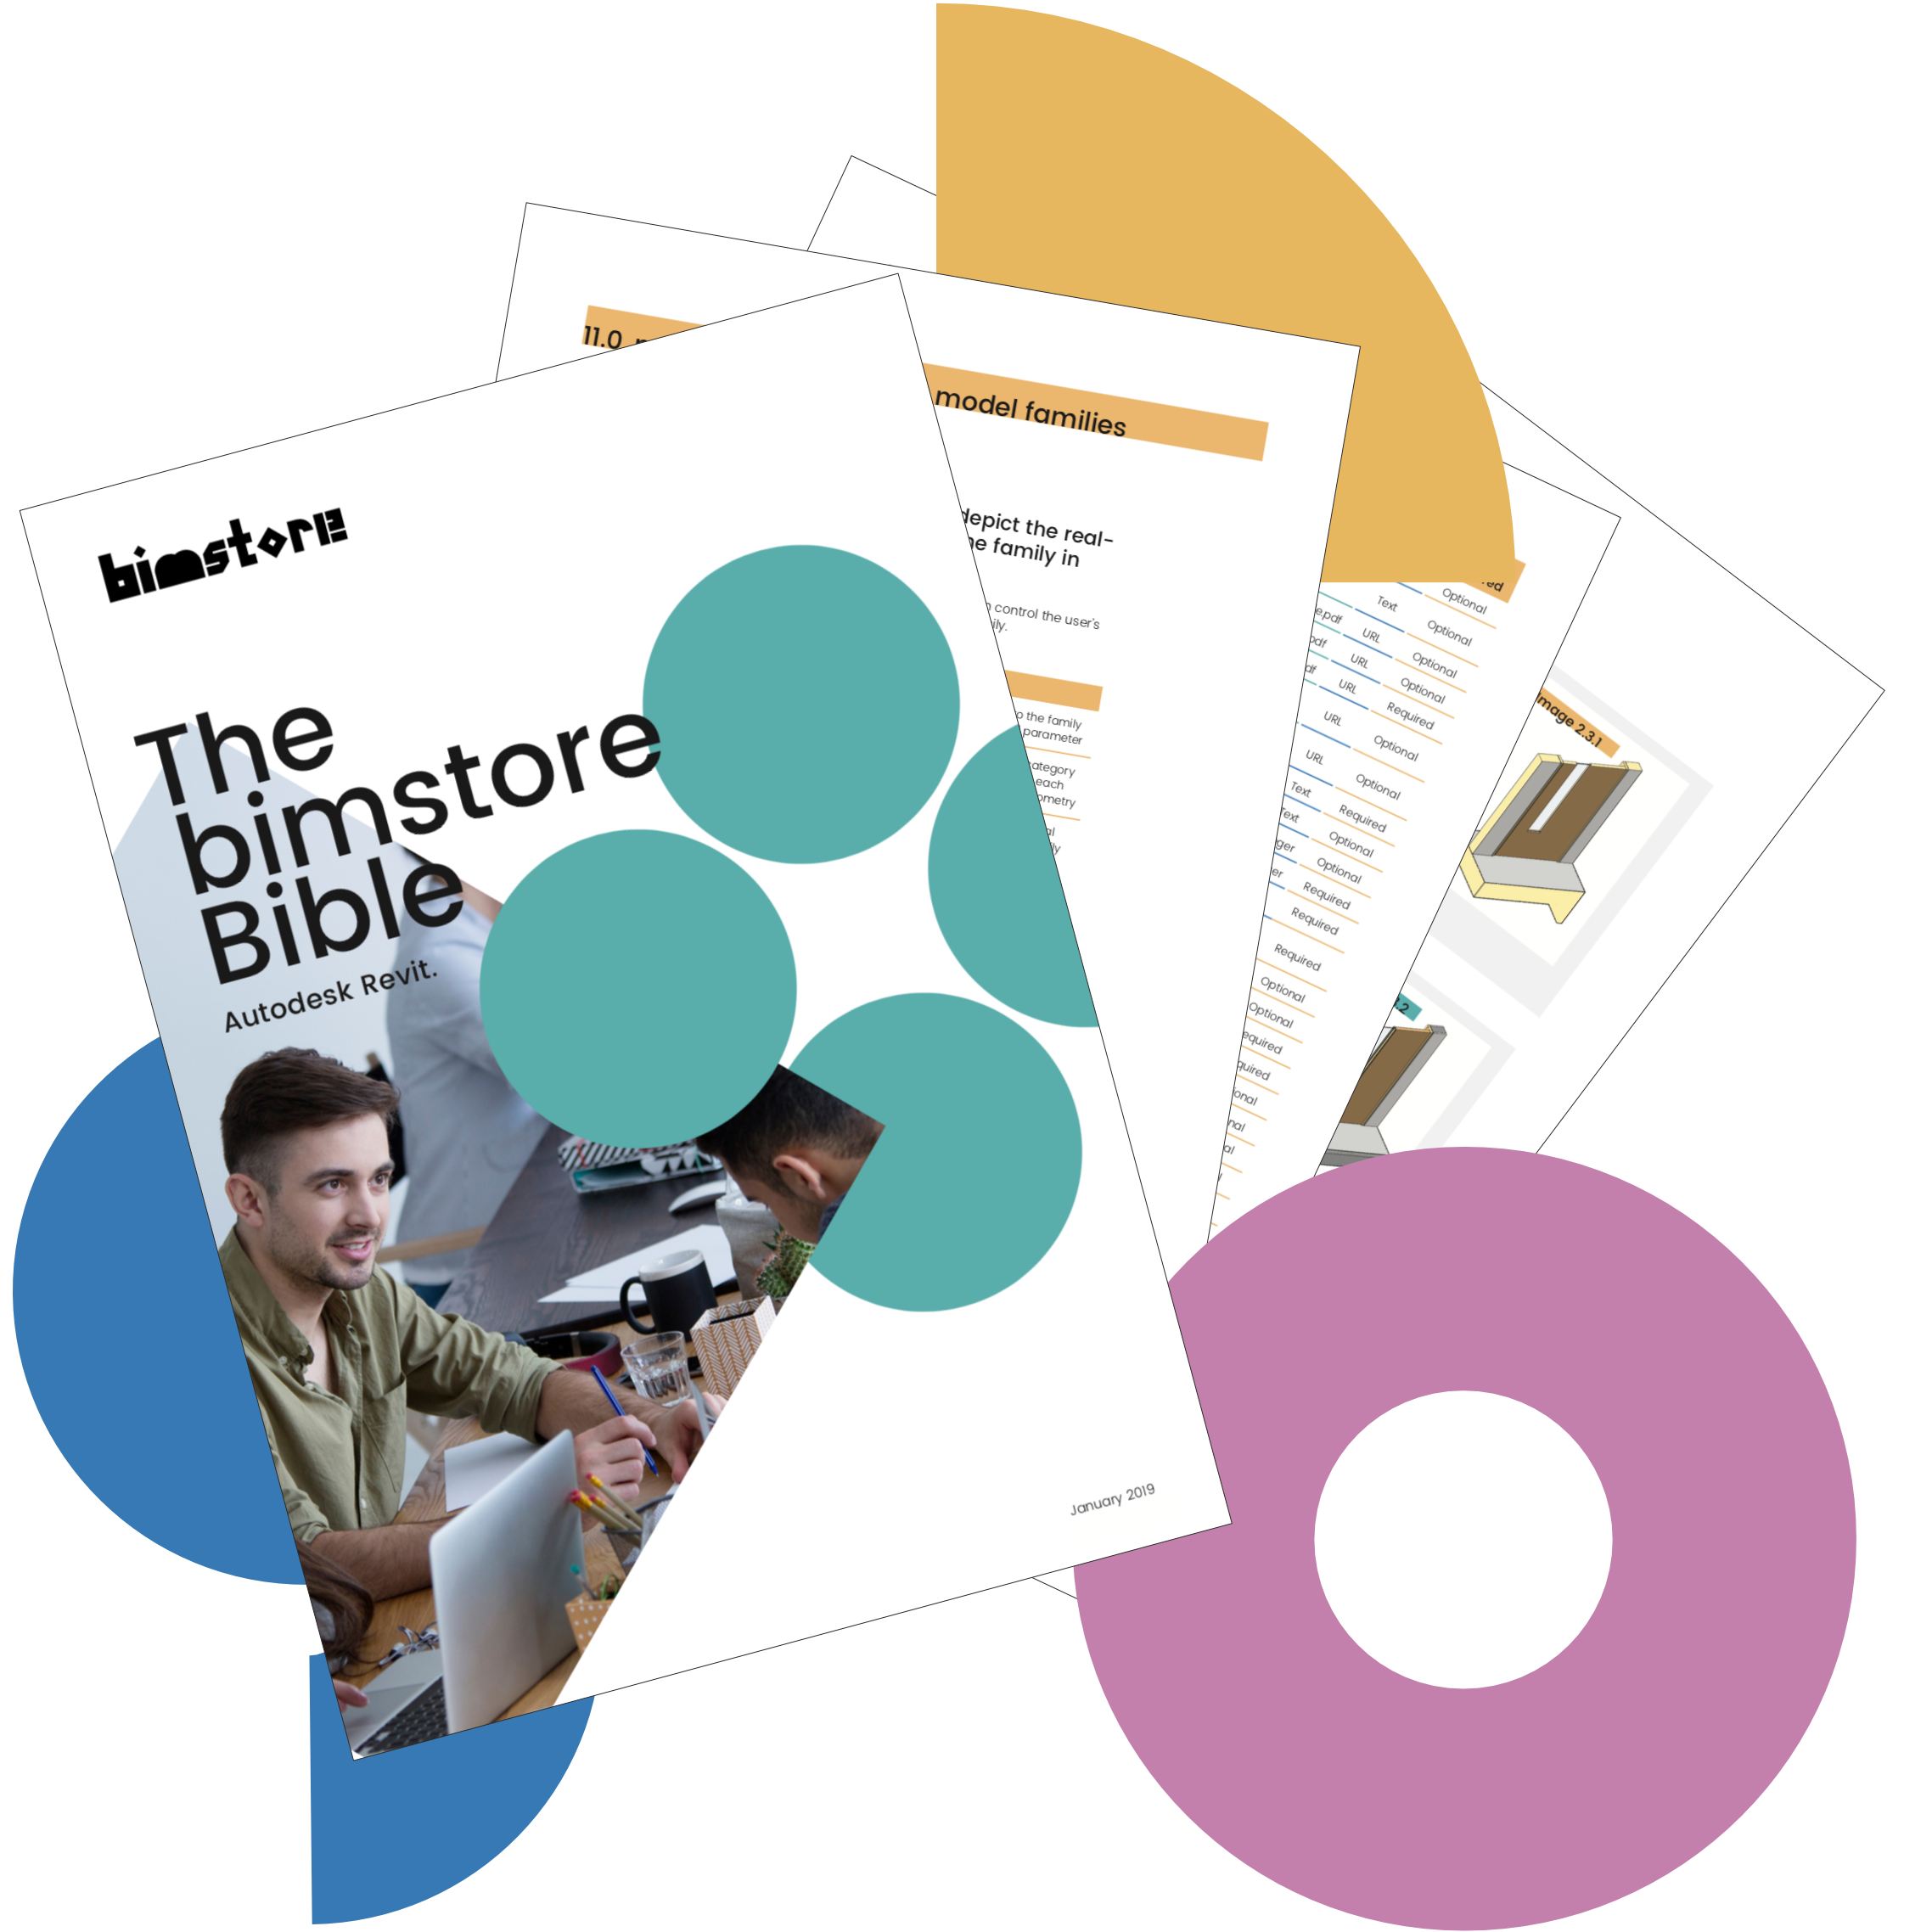 Bimstore Bible Document